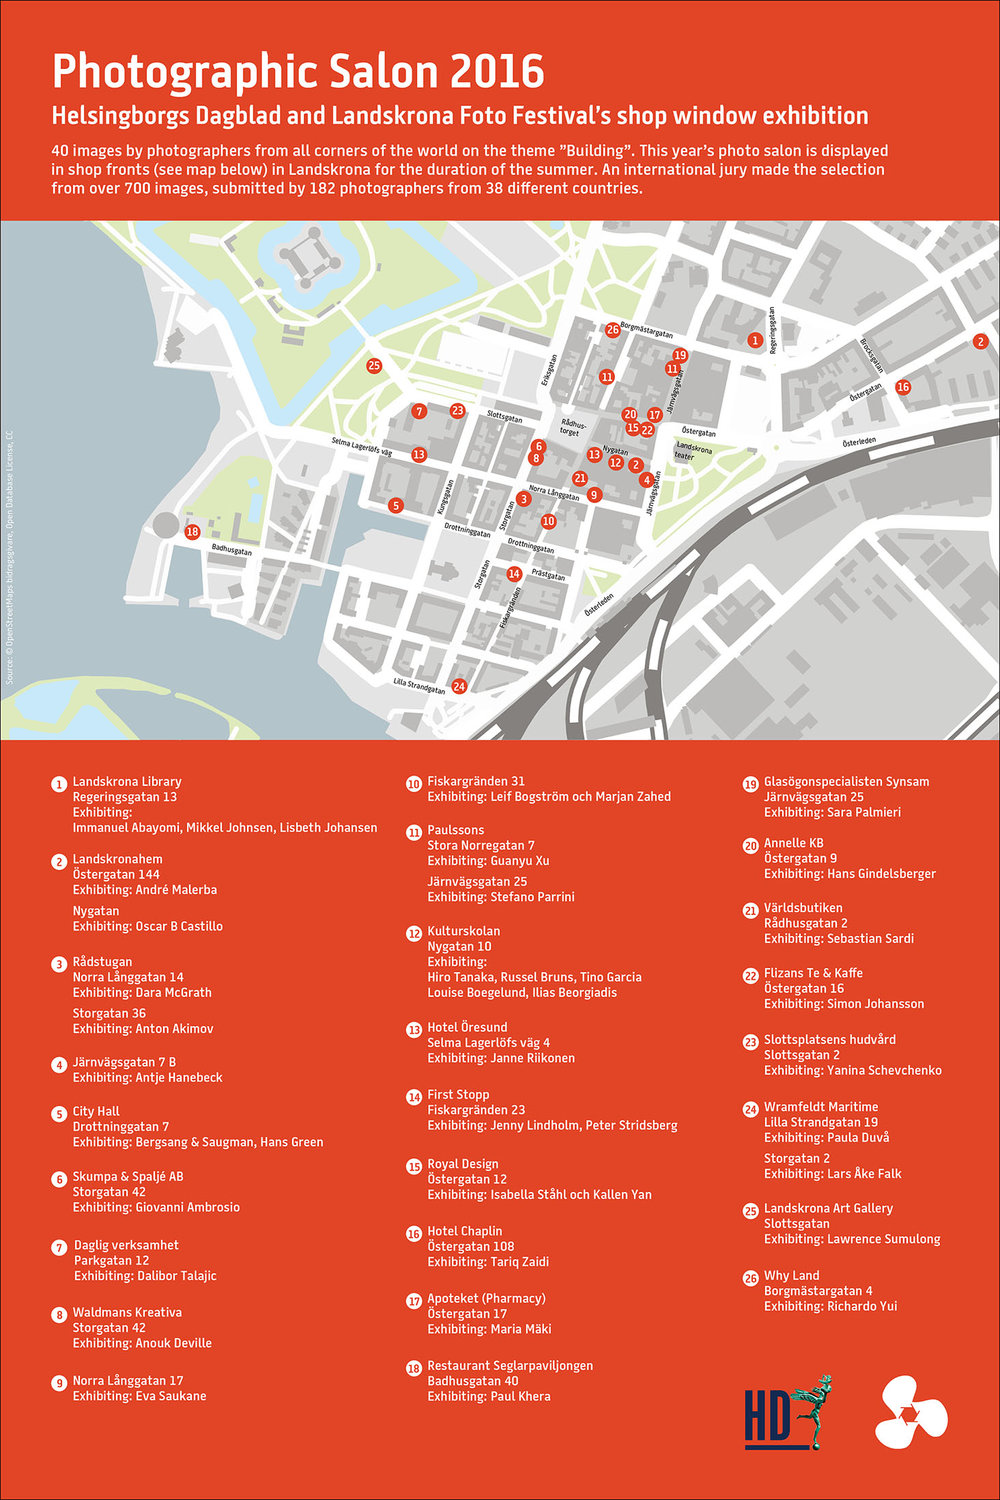 Landskrona-Photo-Salon-2016-map.jpg